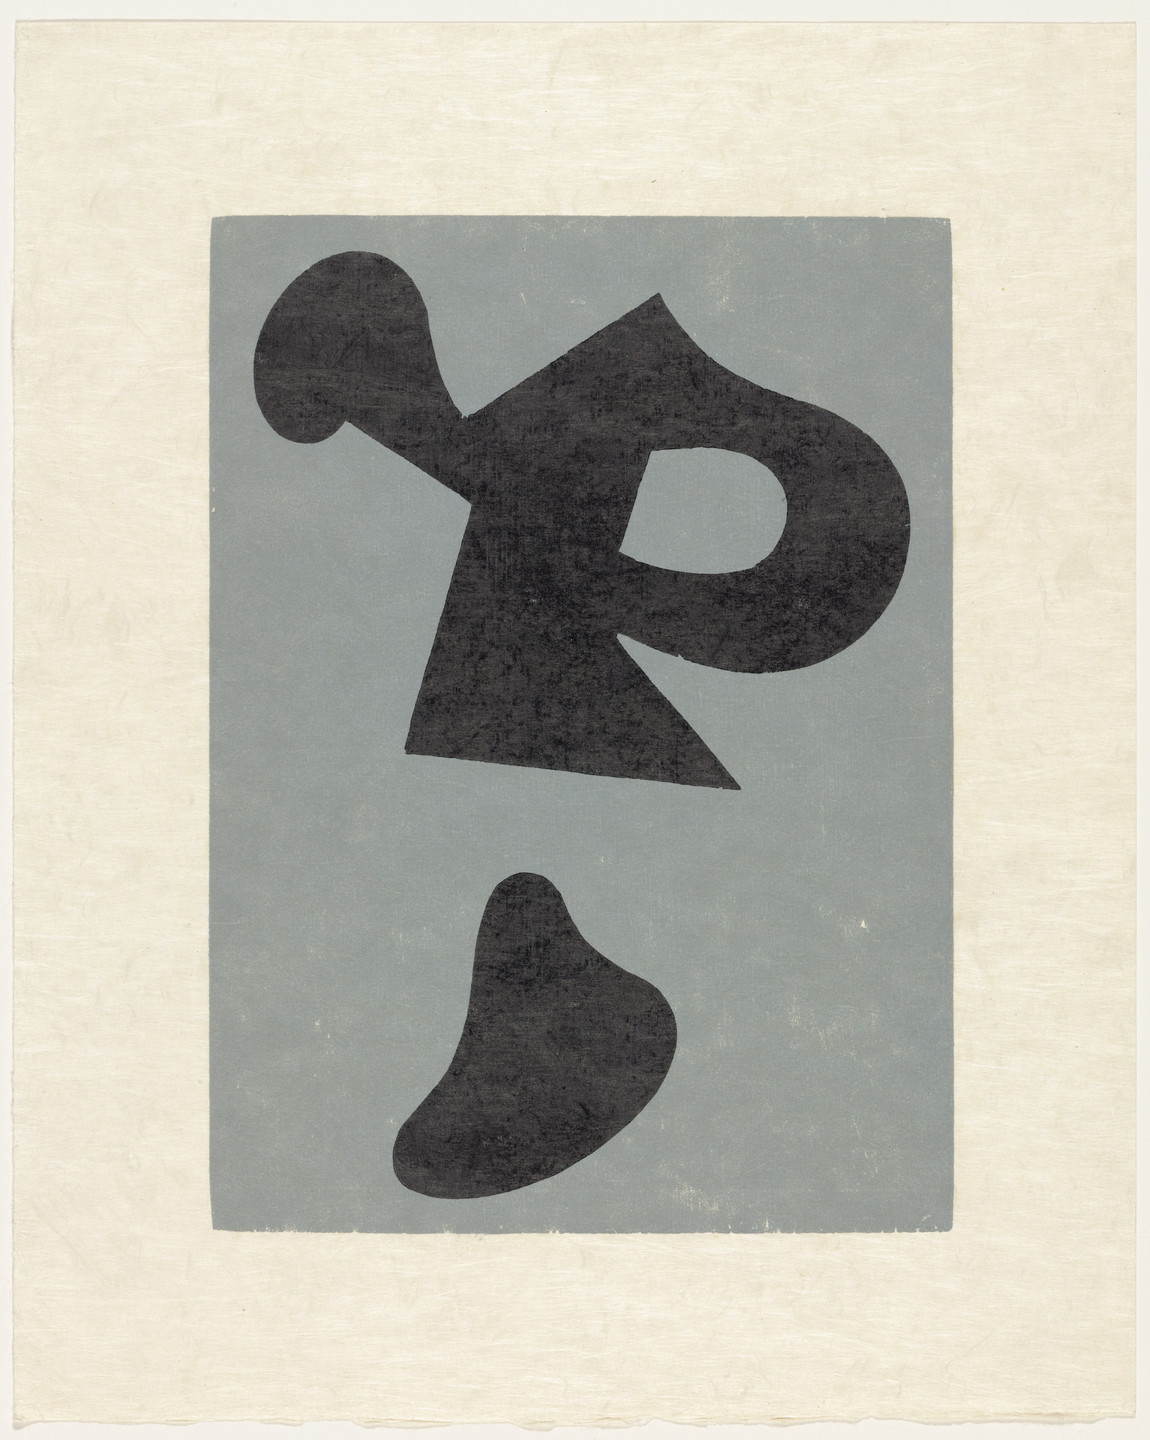 Jean (Hans) Arp. Stay-at-Home Objects (plate, supplementary suite) from Dreams and Projects. 1951–52, published 1952